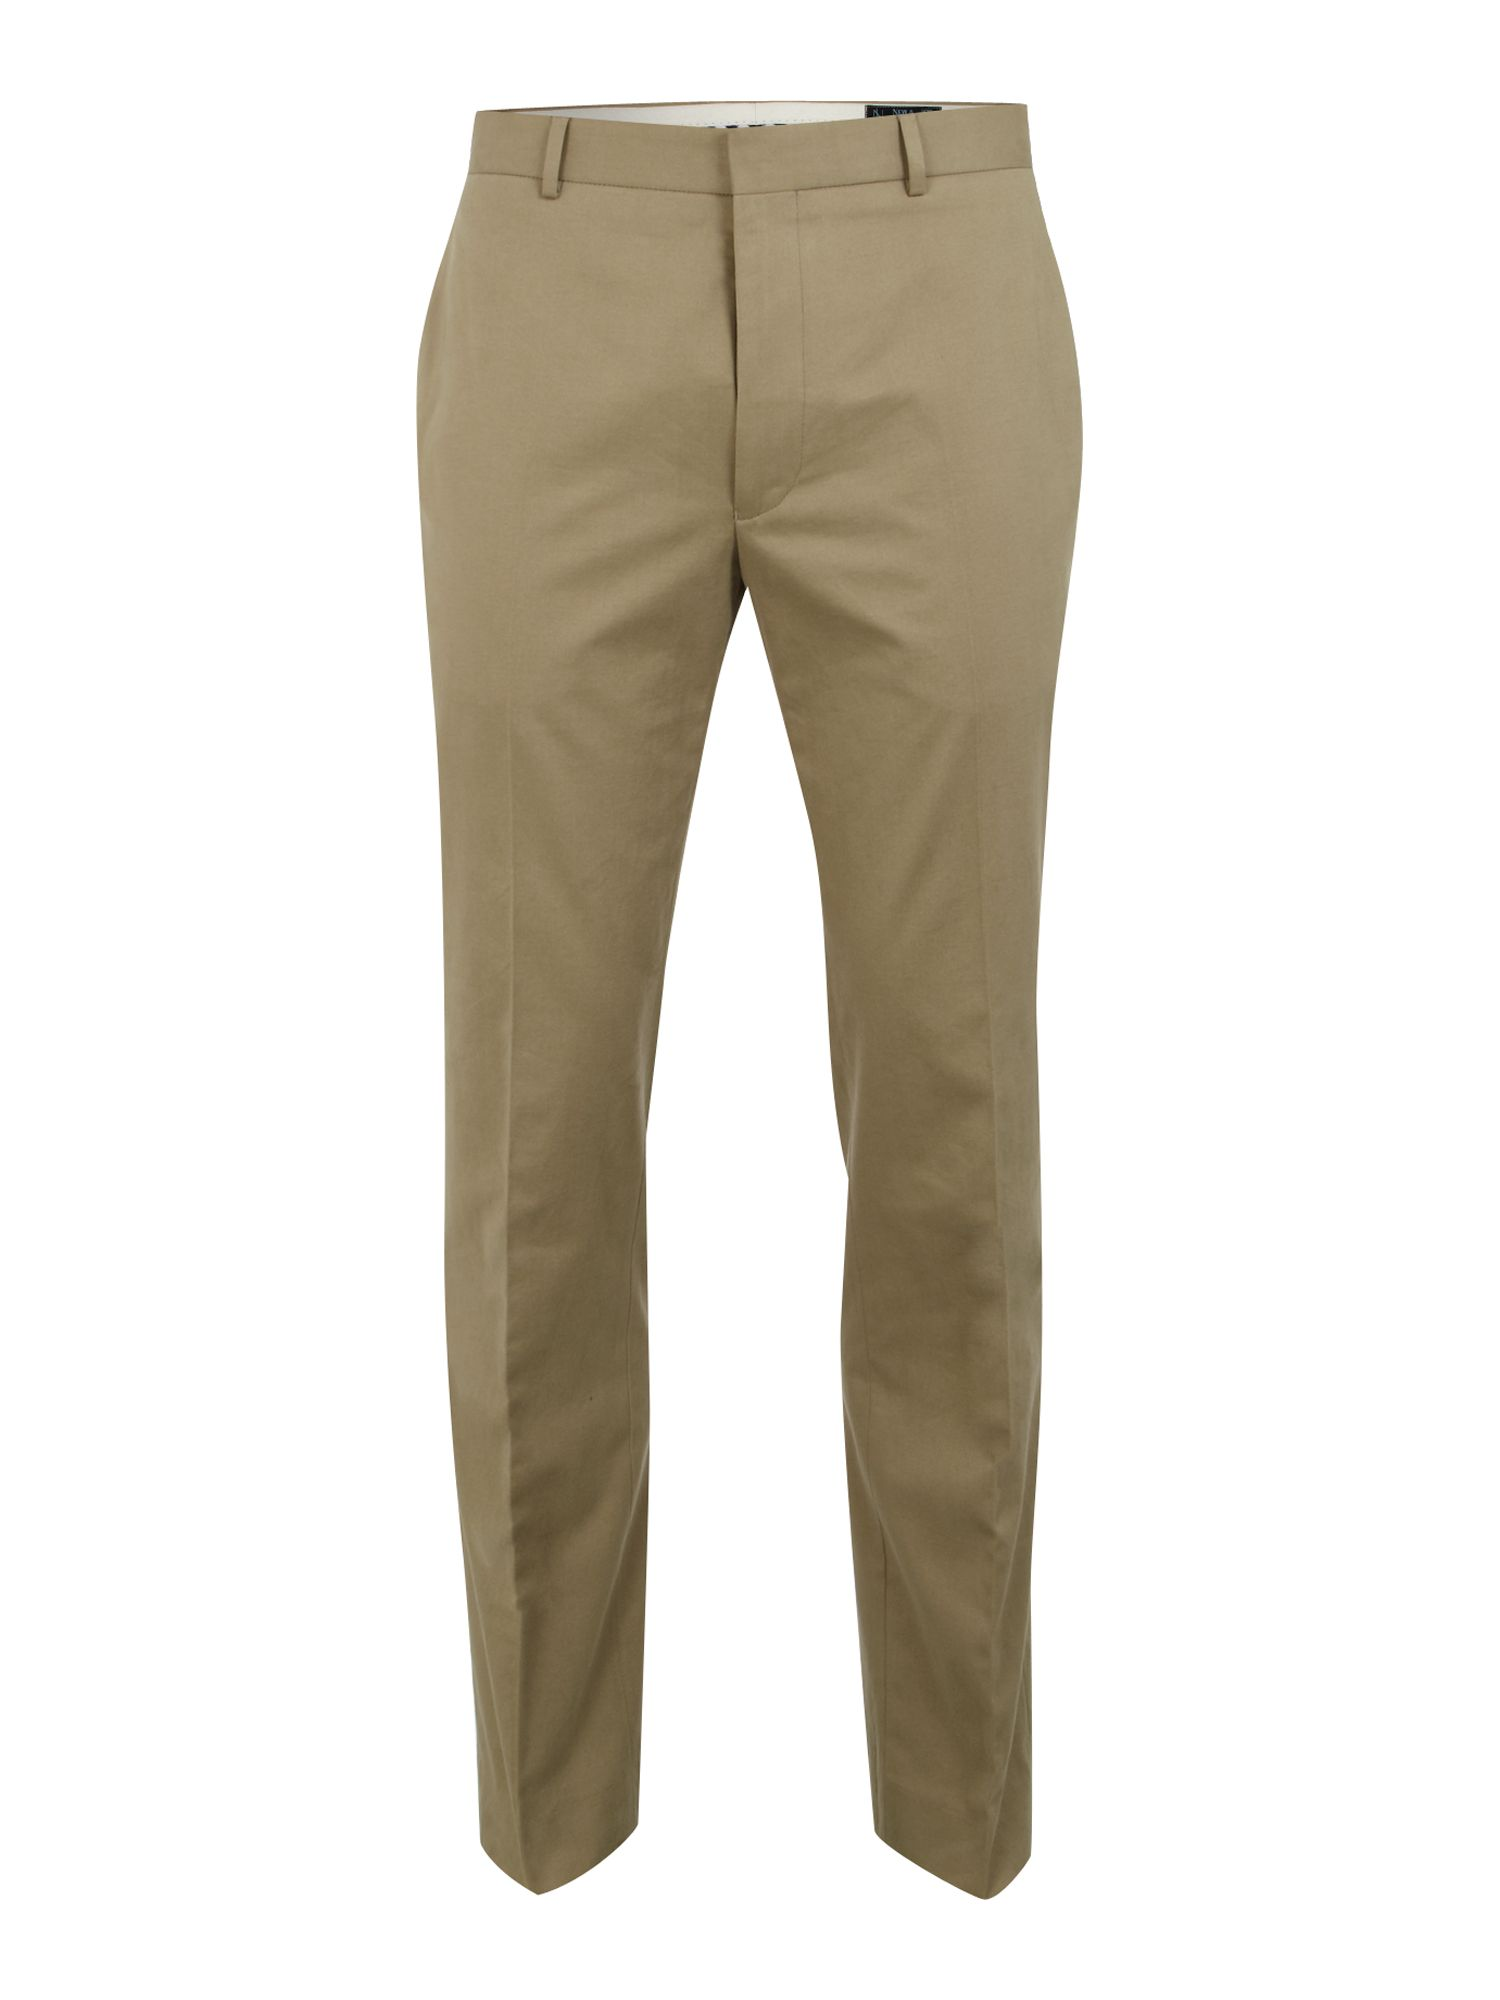 Buckden Cotton Satin Trousers